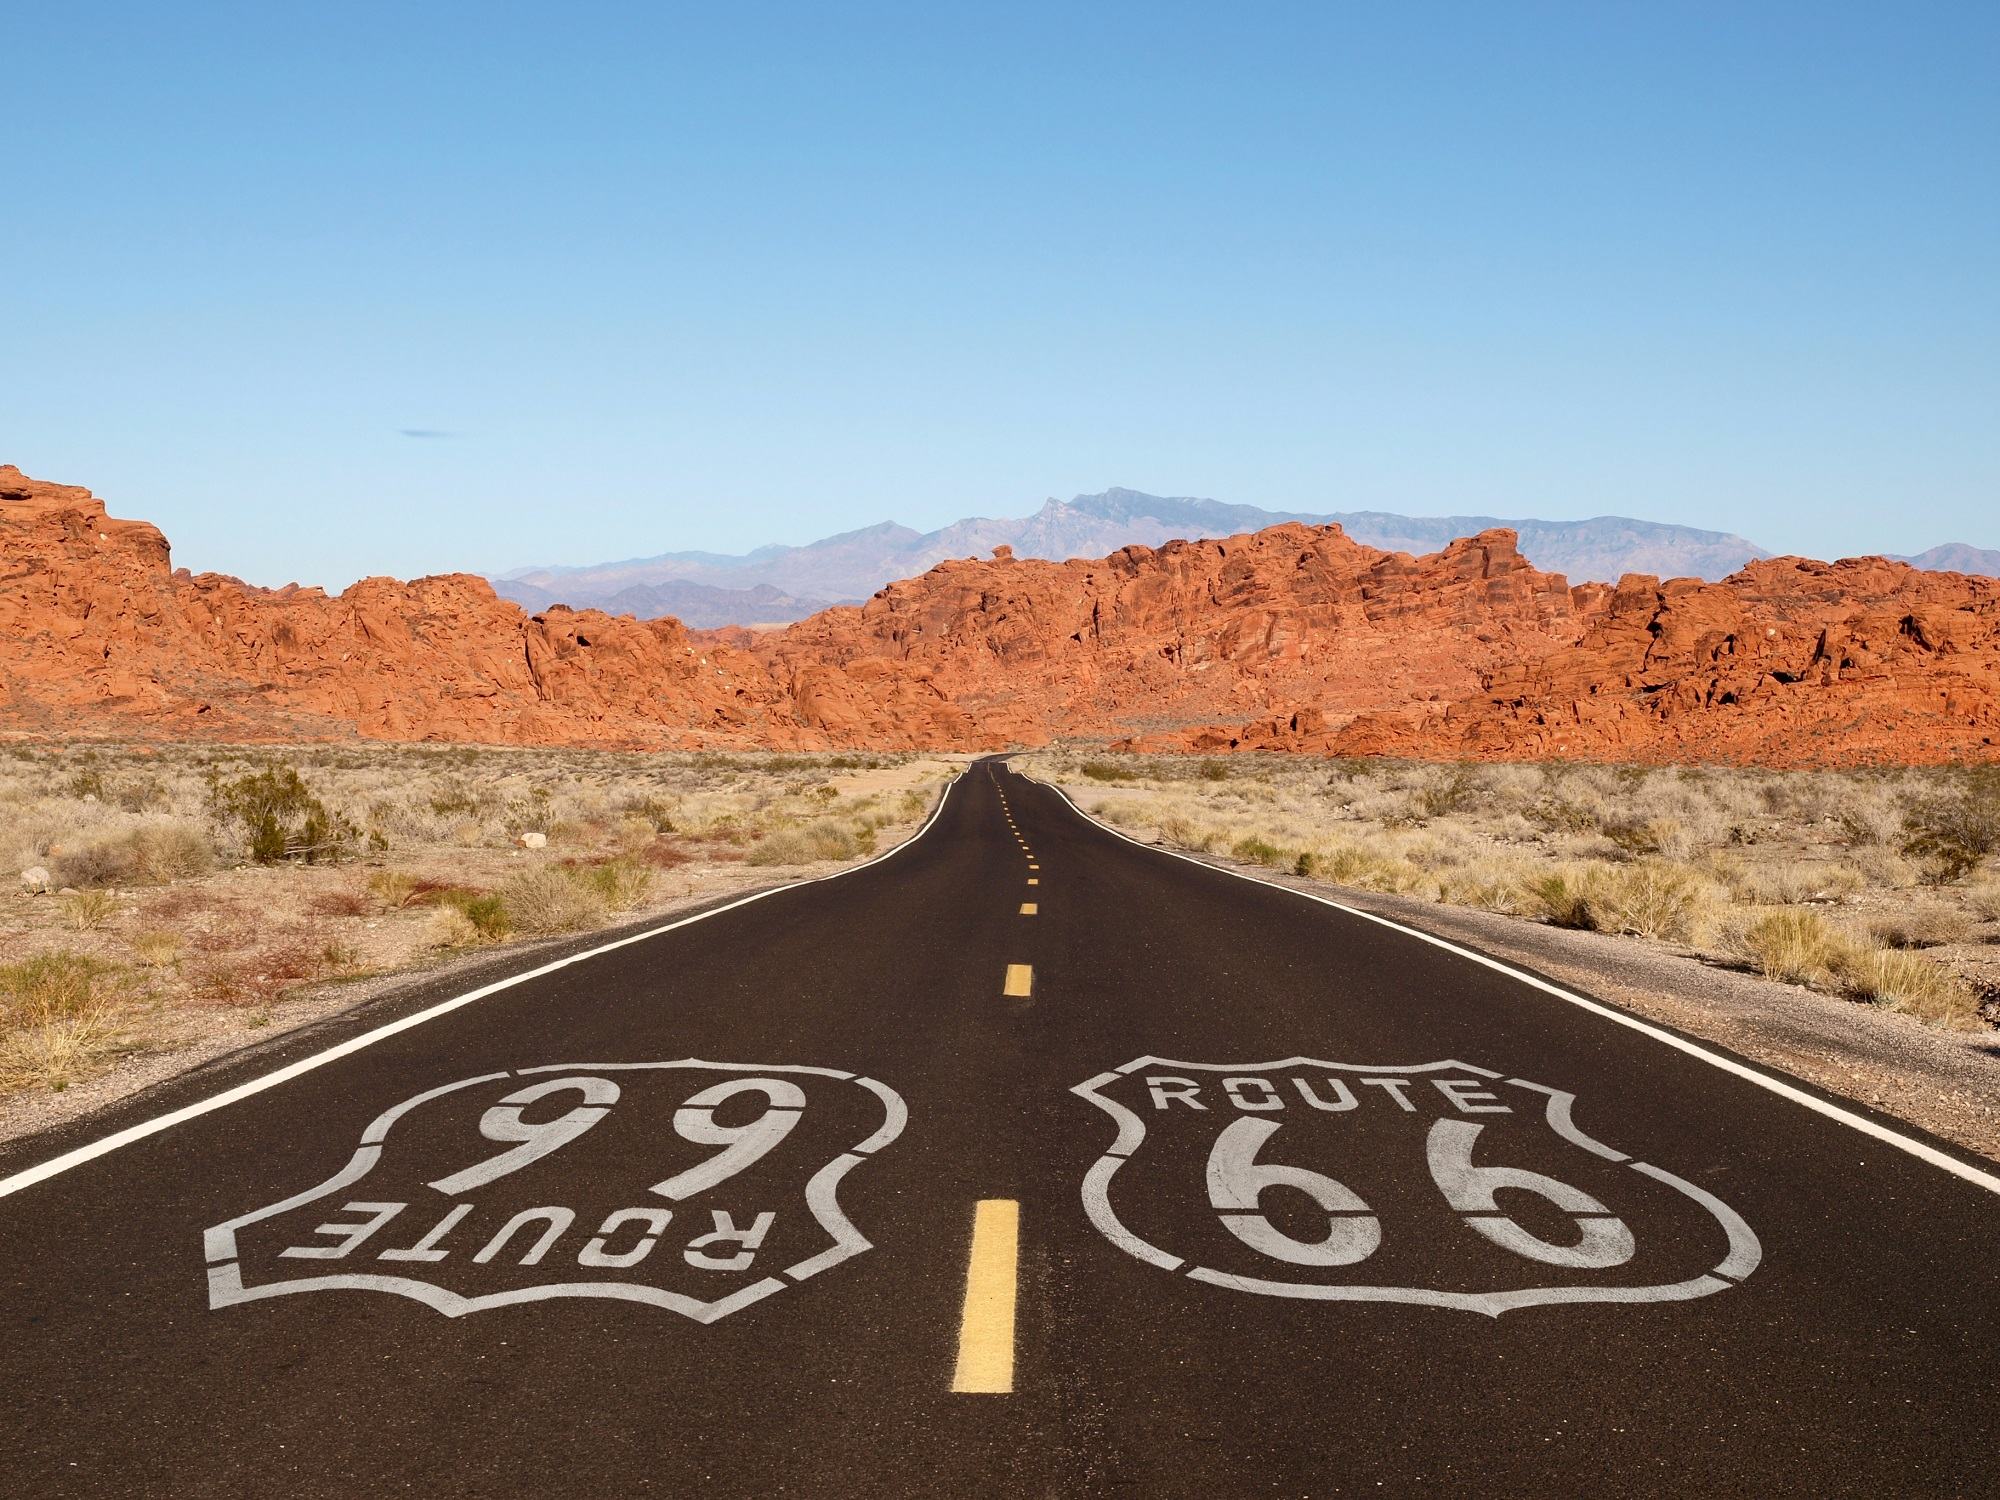 Route 66. Photo: trekandshoot/Shutterstock